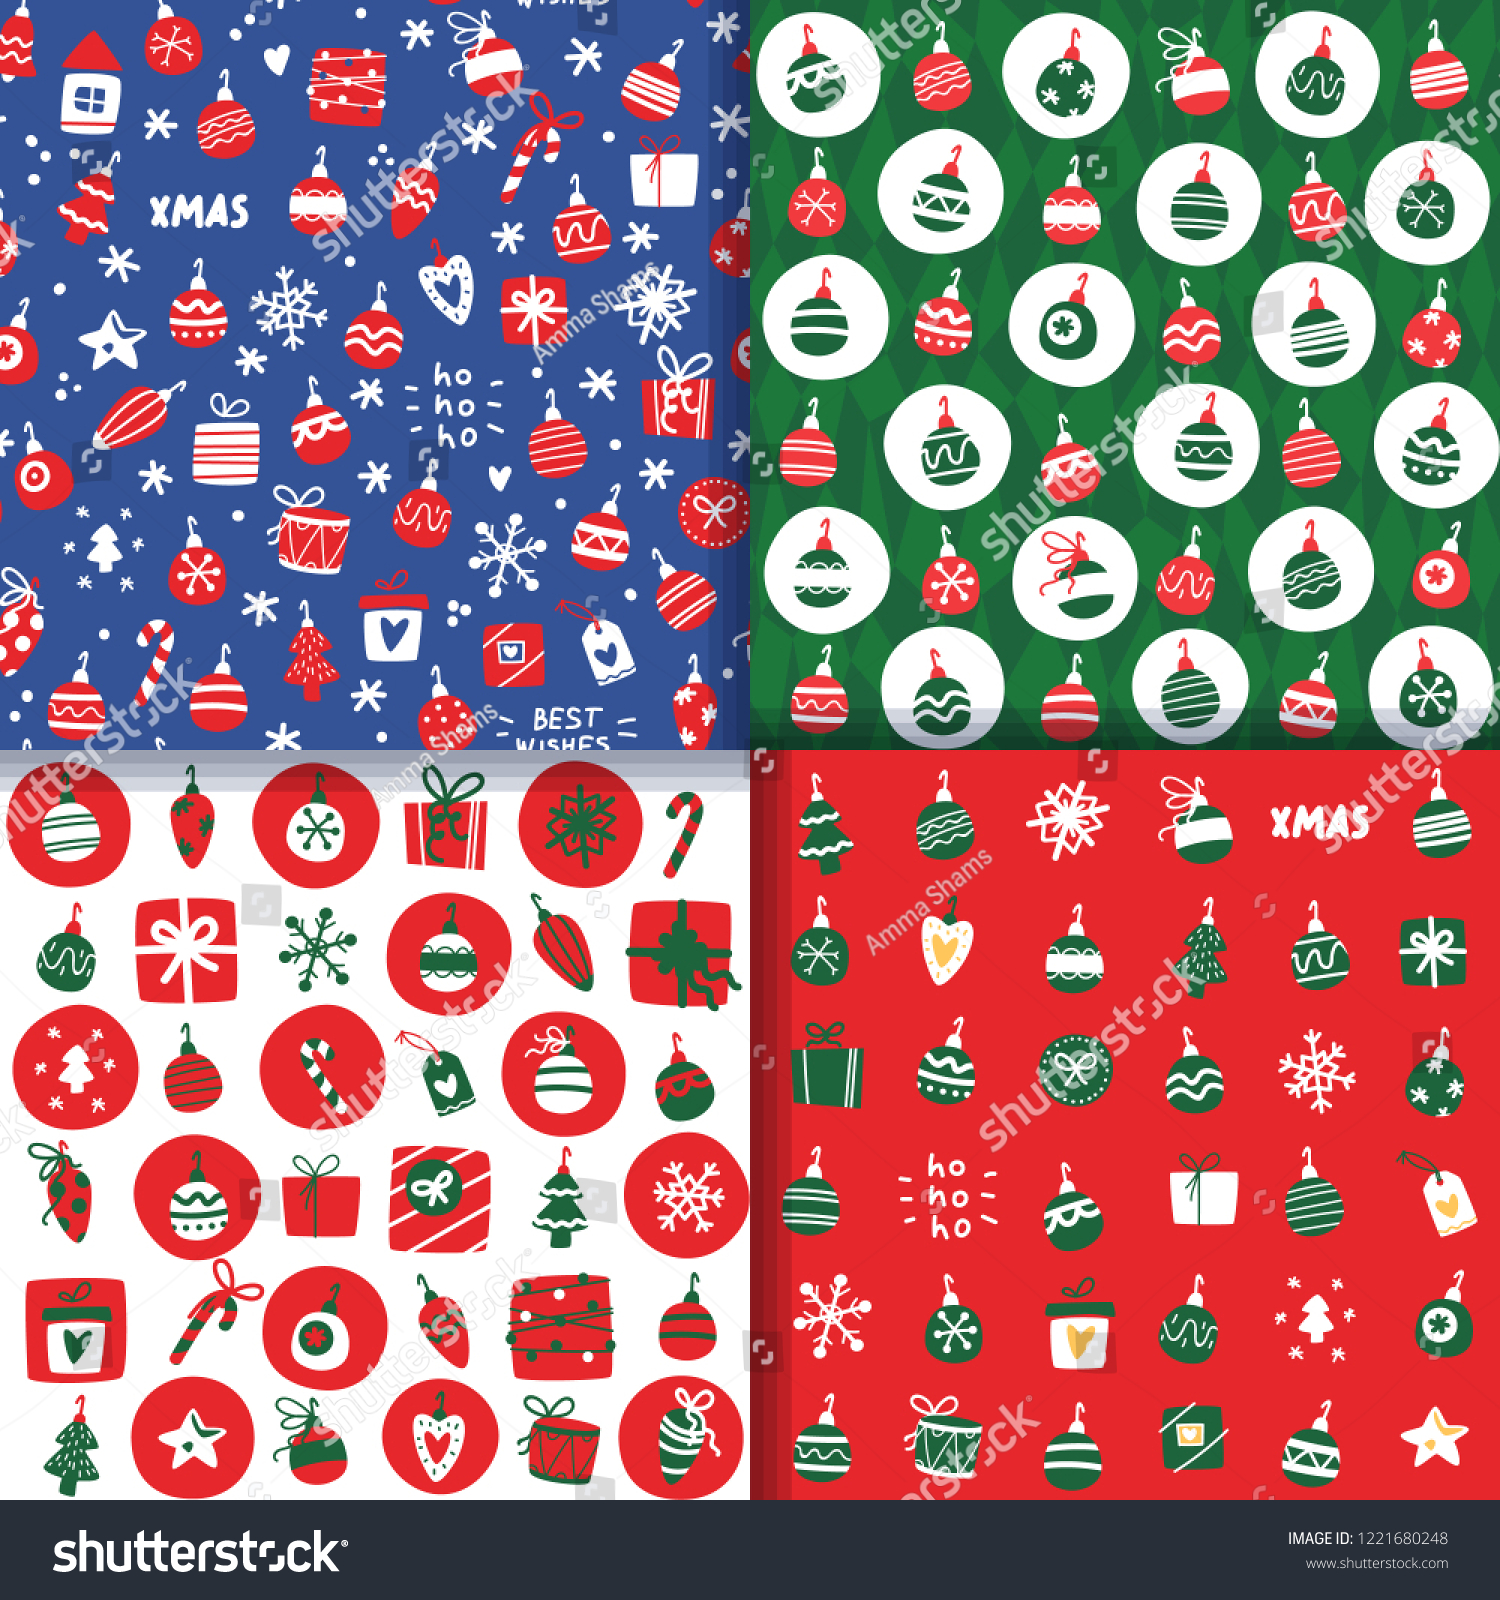 Christmas Backgrounds Cute.Set Vector Christmas Backgrounds Cute Cartoon Stock Vector